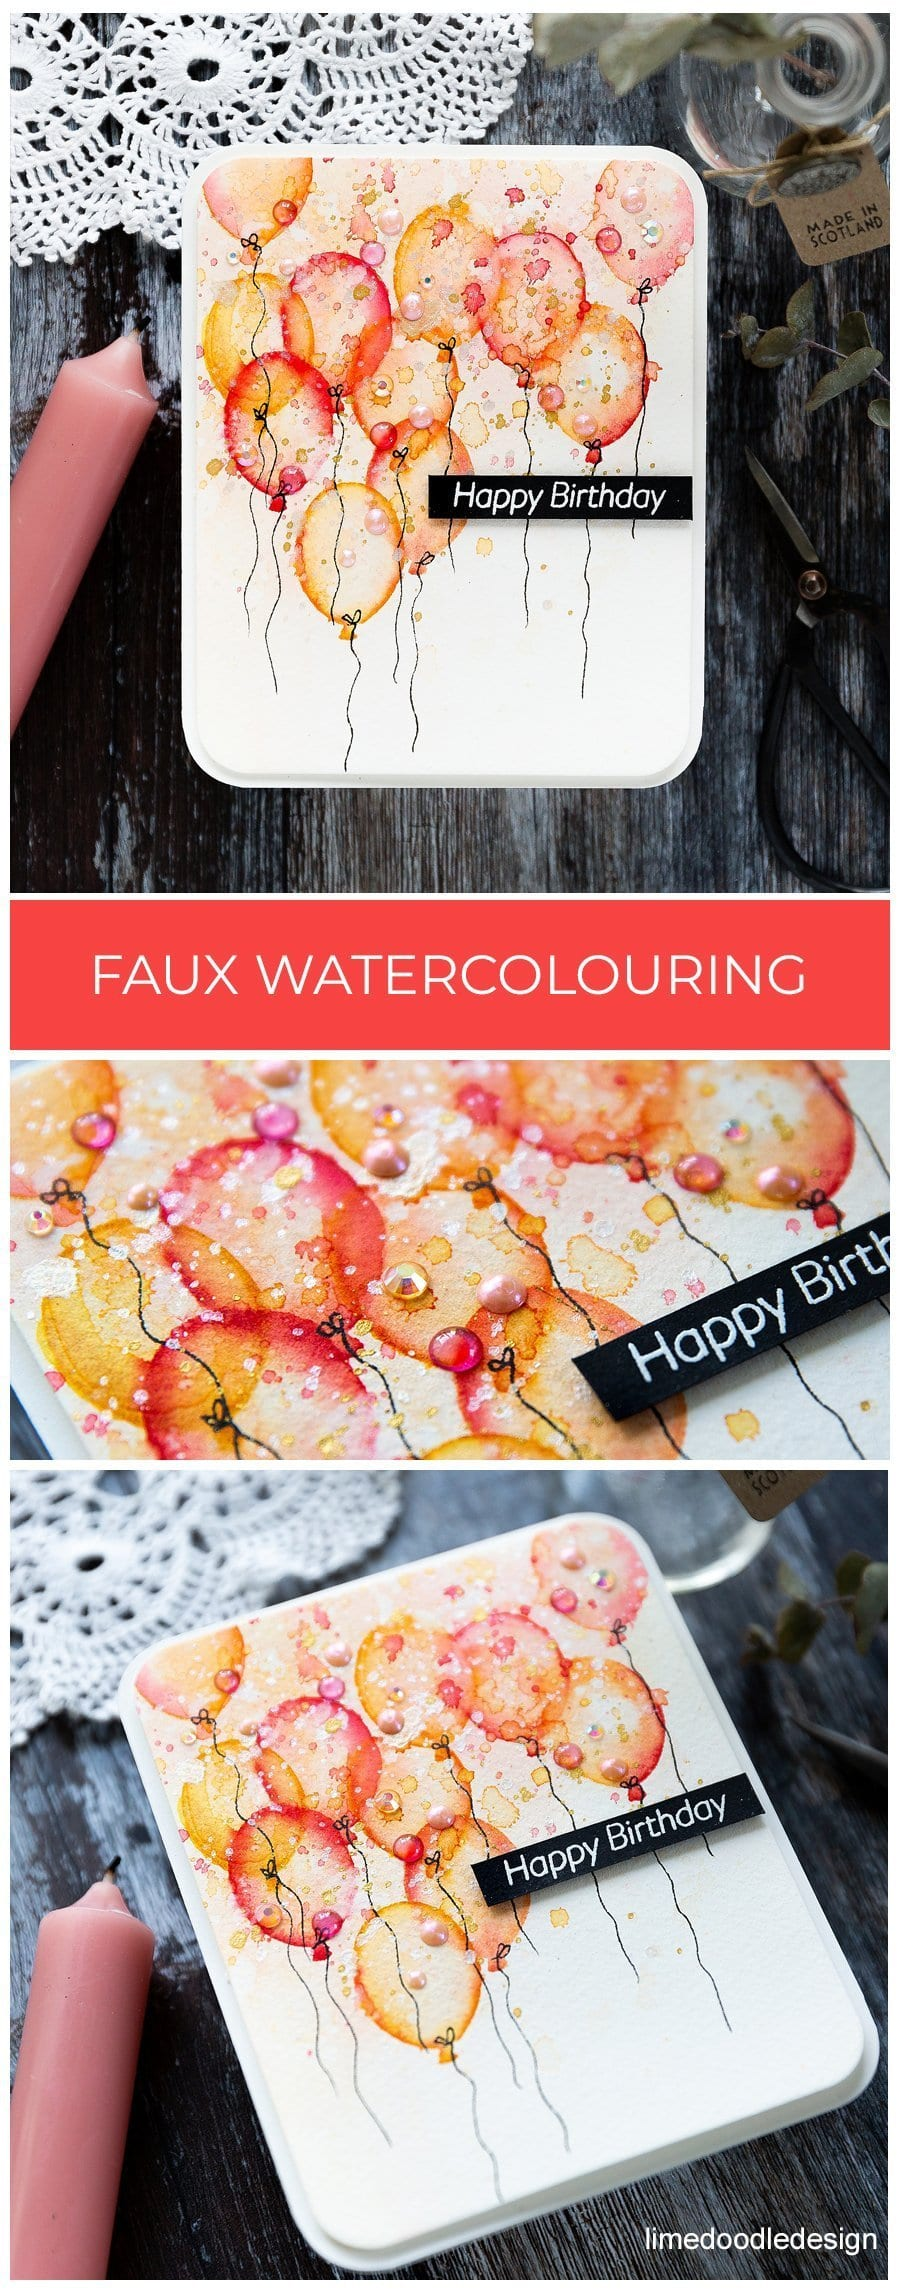 Faux watercoloured birthday balloons handmade card by Debby Hughes using supplies from Simon Says Stamp. Find out more here: https://limedoodledesign.com/2019/05/faux-watercoloured-birthday-balloons-blog-hop/